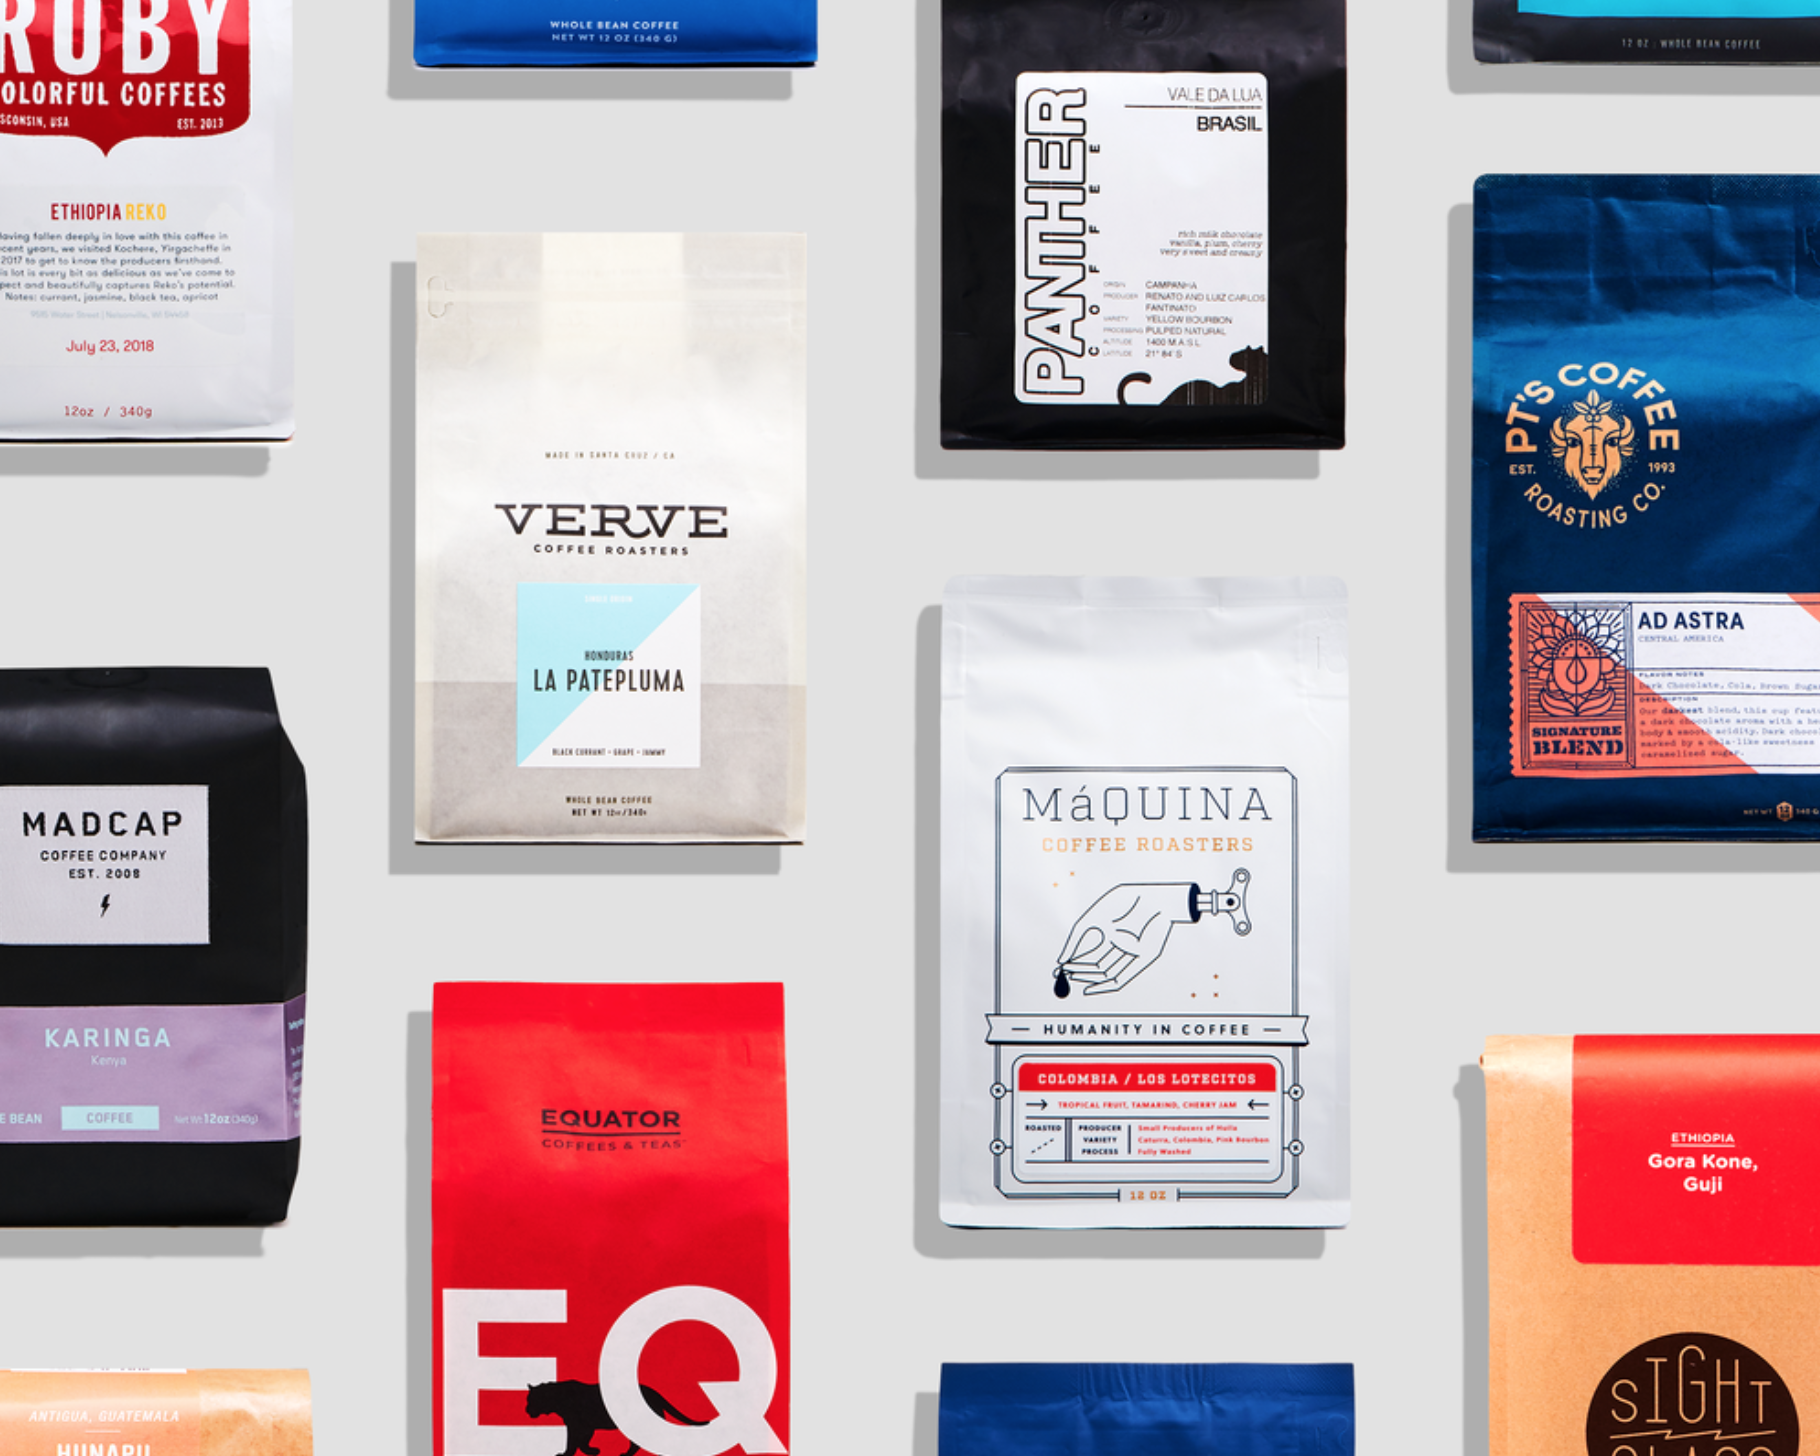 Multiple colorful bags of coffee